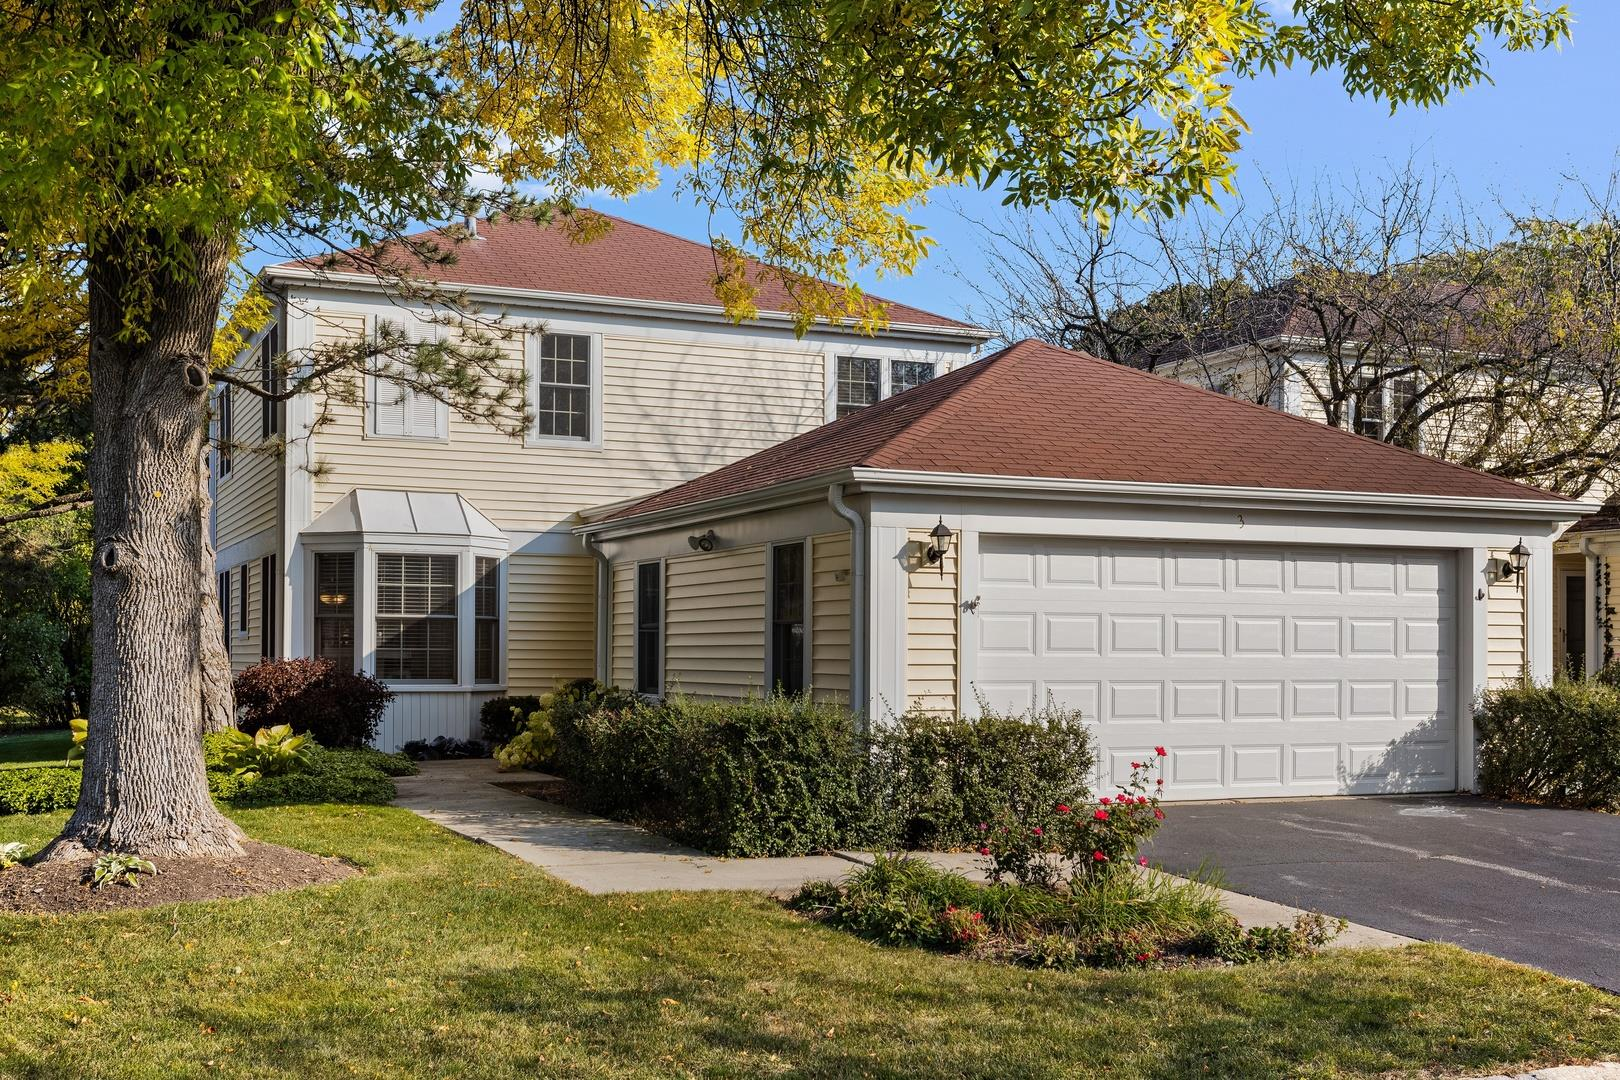 3 court of lagoon view, Northbrook, IL 60062 - #: 10905151